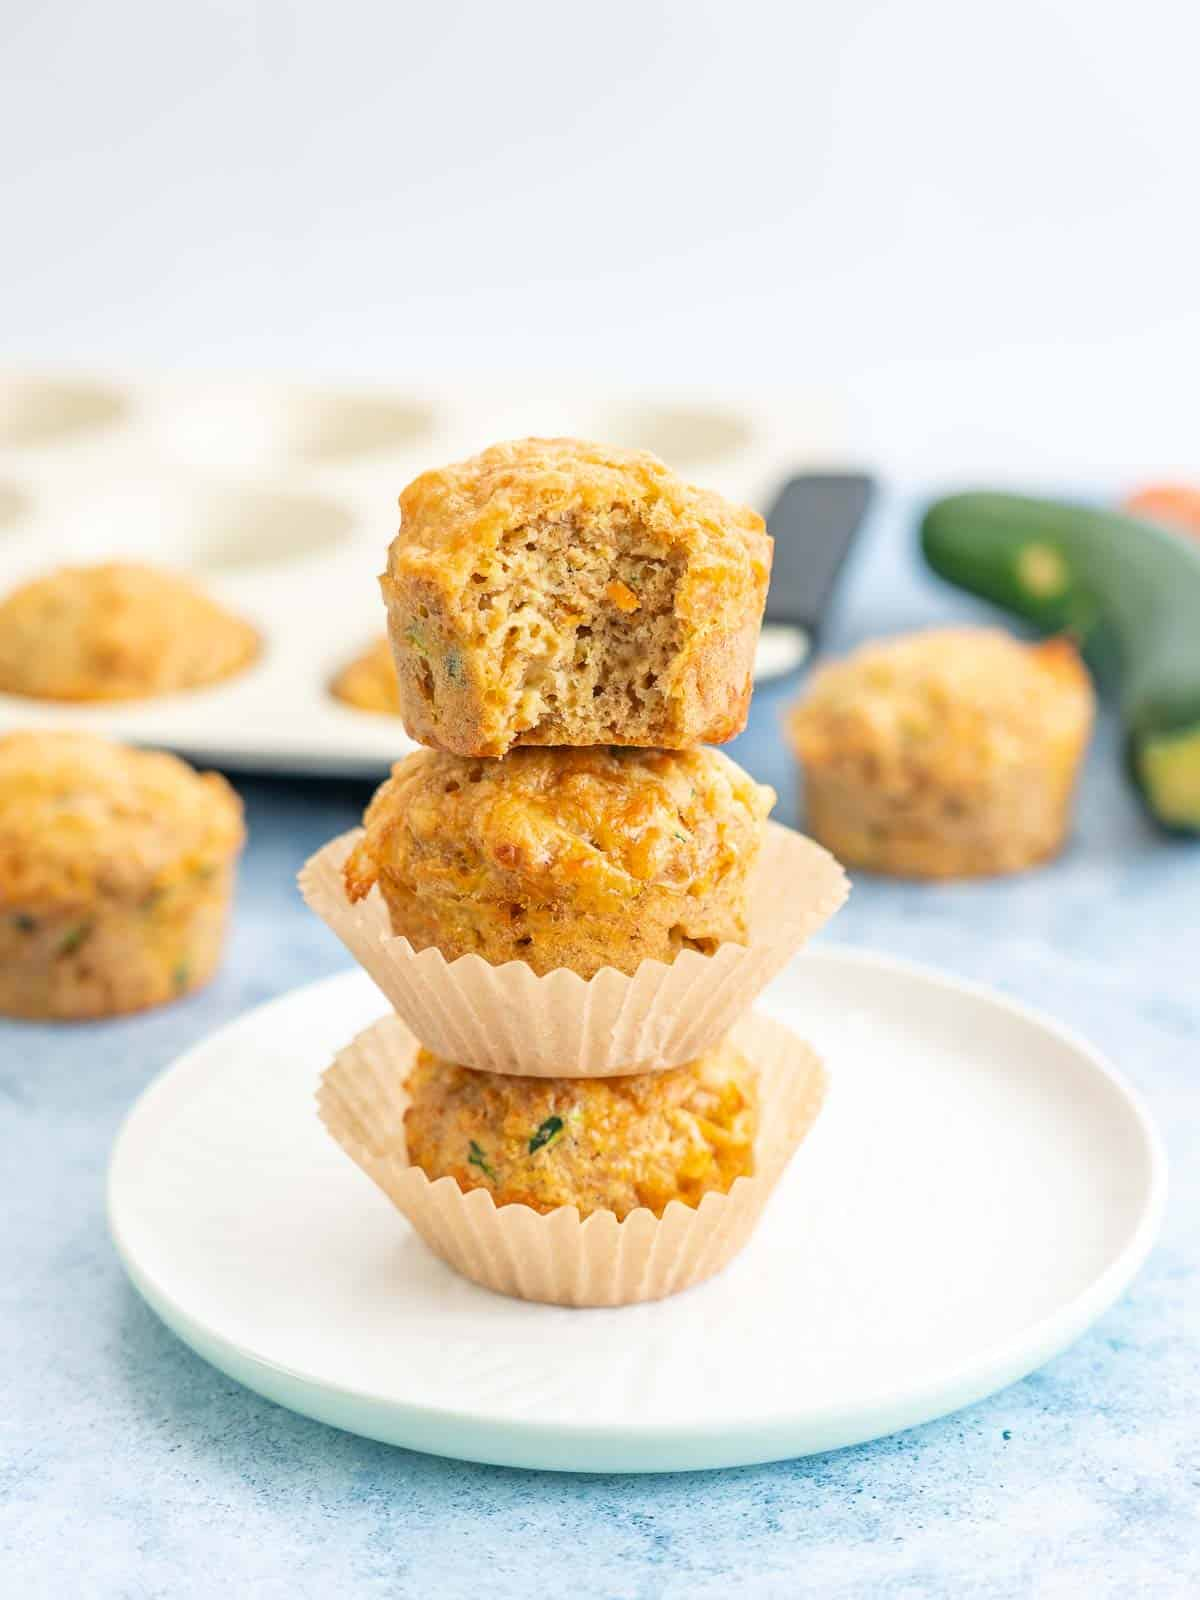 3 savoury muffins staked on top of each other, muffin tray and vegetables in the background